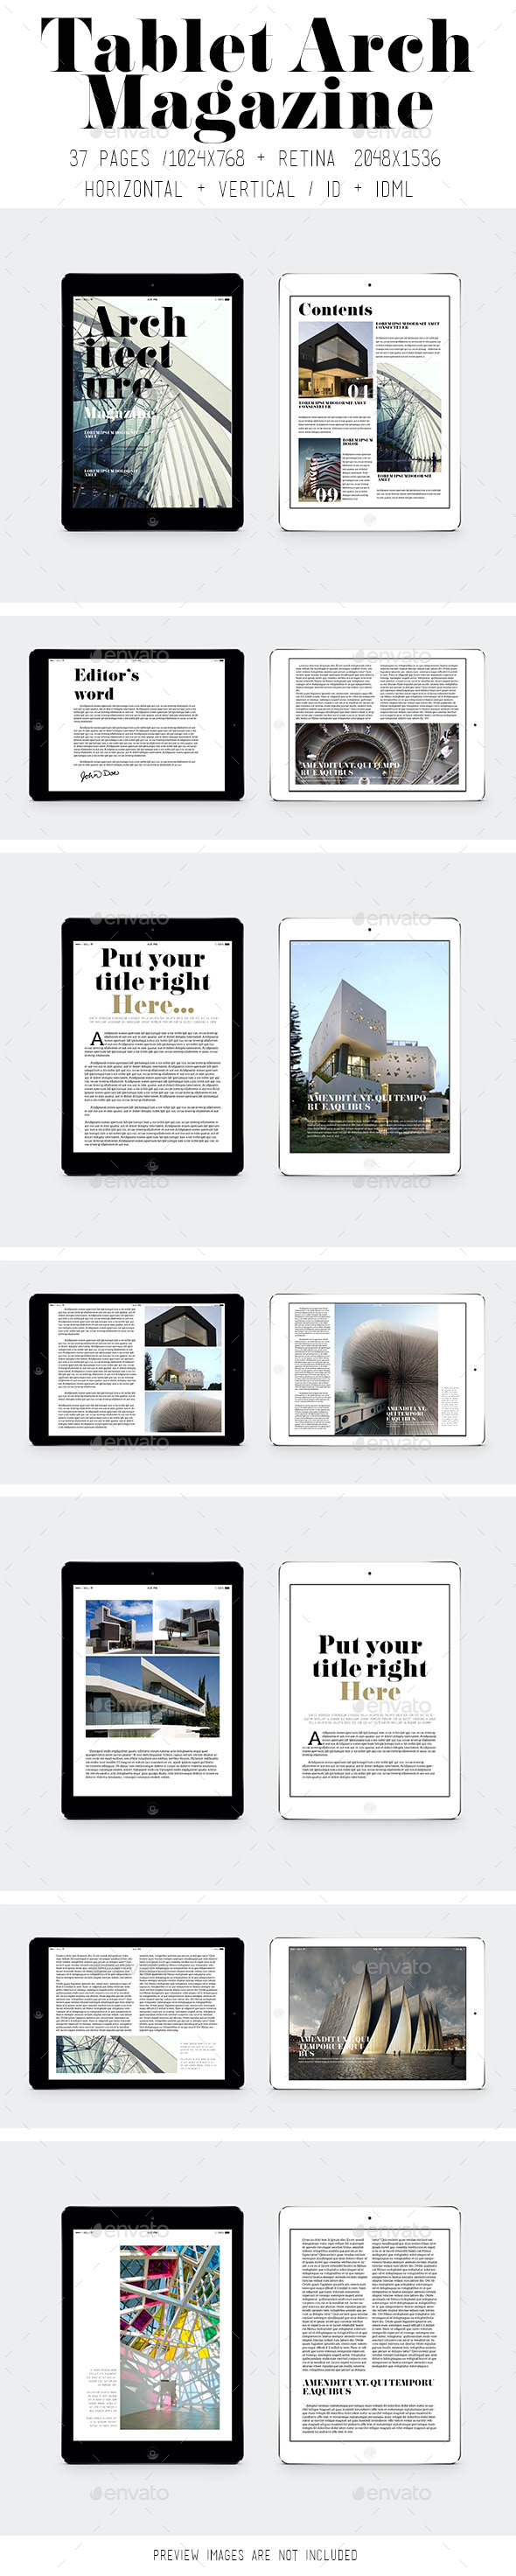 iPad & Tablet Arch Magazine - Digital Magazines ePublishing